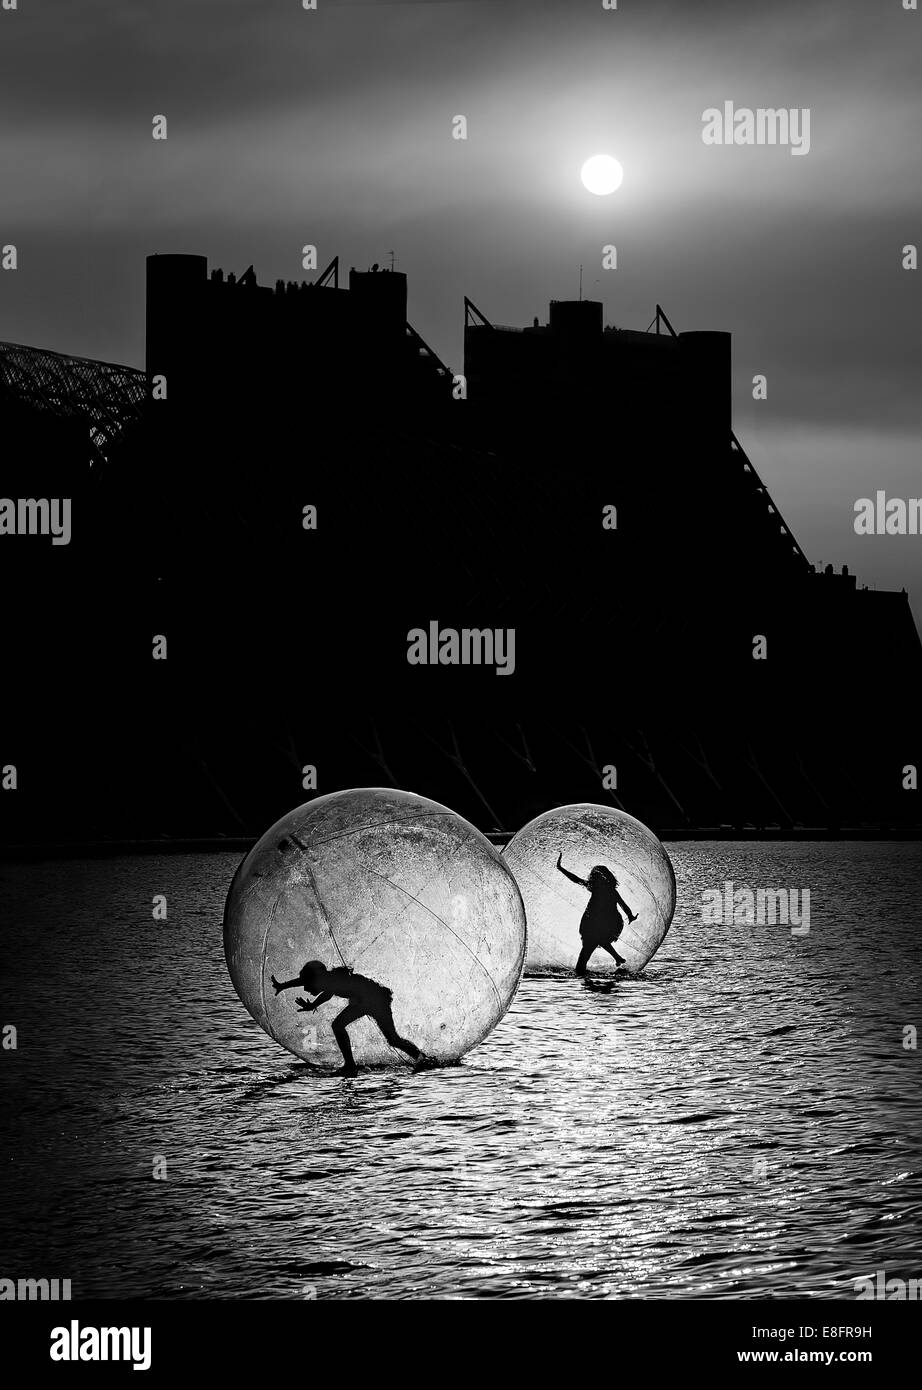 Silhouette of two children treading water in transparent spheres - Stock Image